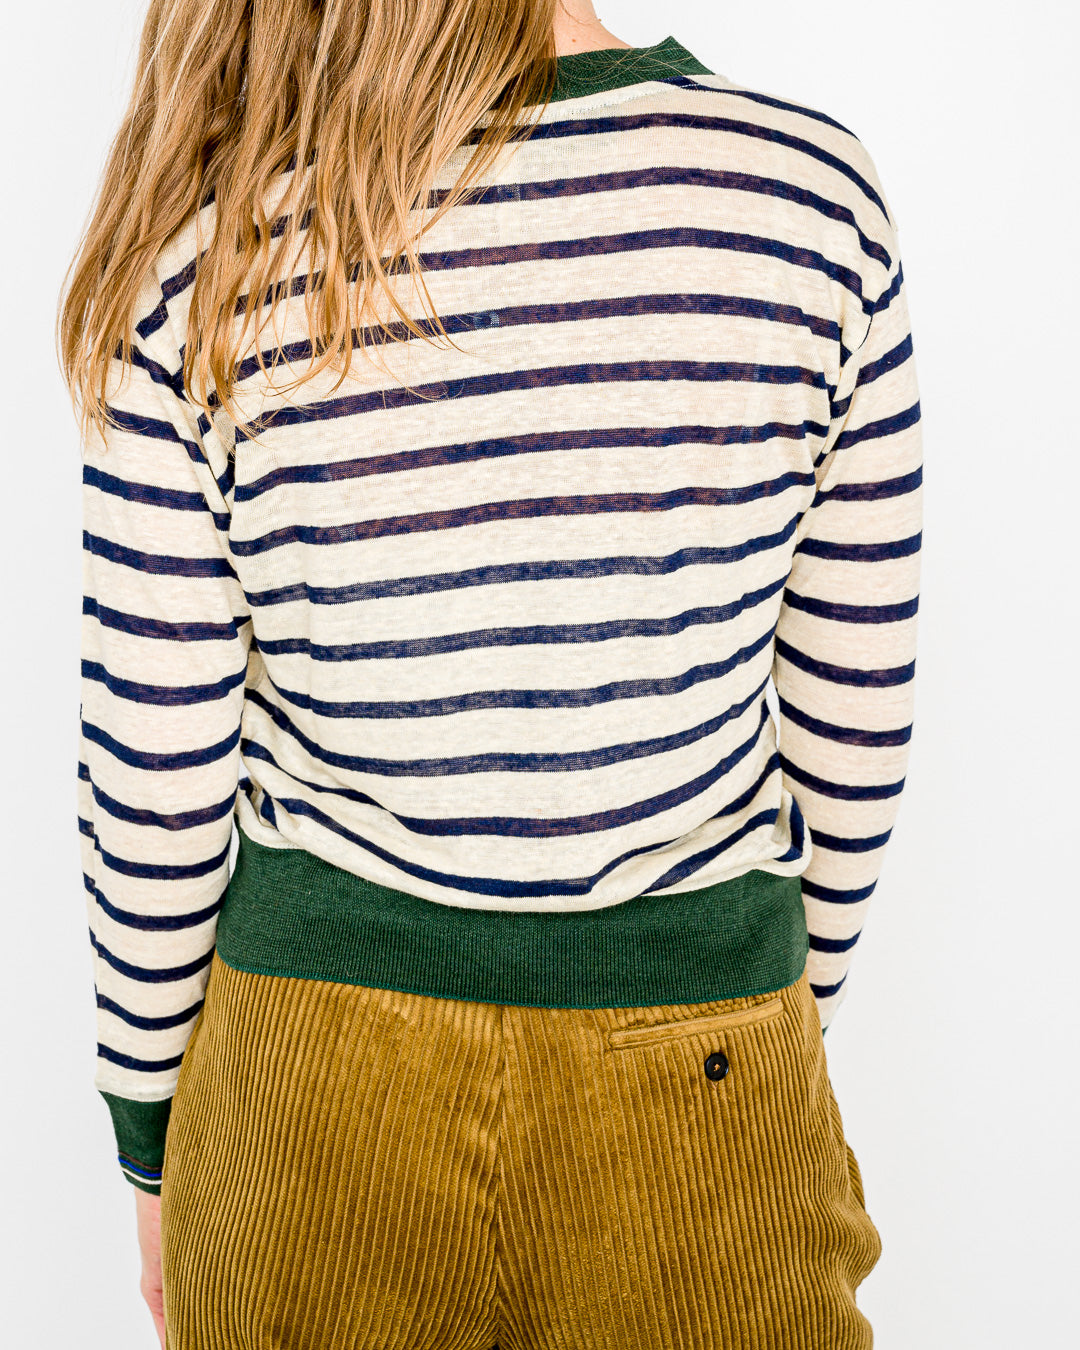 Bellerose // T-Shirt Senia Multi